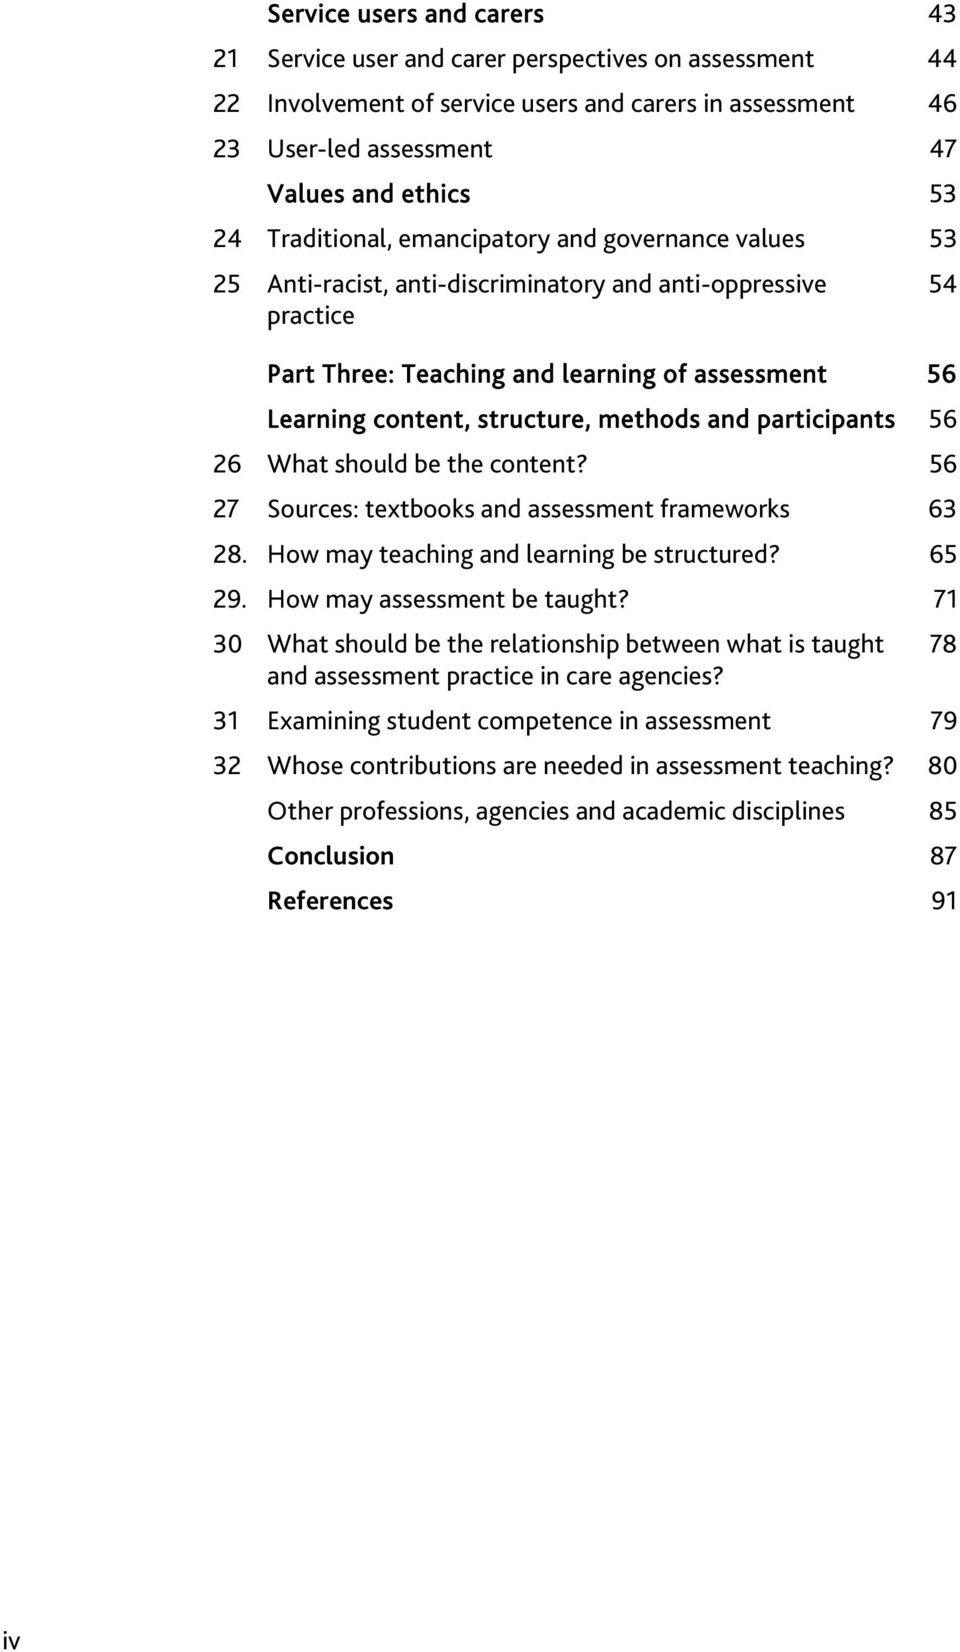 methods and participants 56 26 What should be the content? 56 27 Sources: textbooks and assessment frameworks 63 28. How may teaching and learning be structured? 65 29. How may assessment be taught?